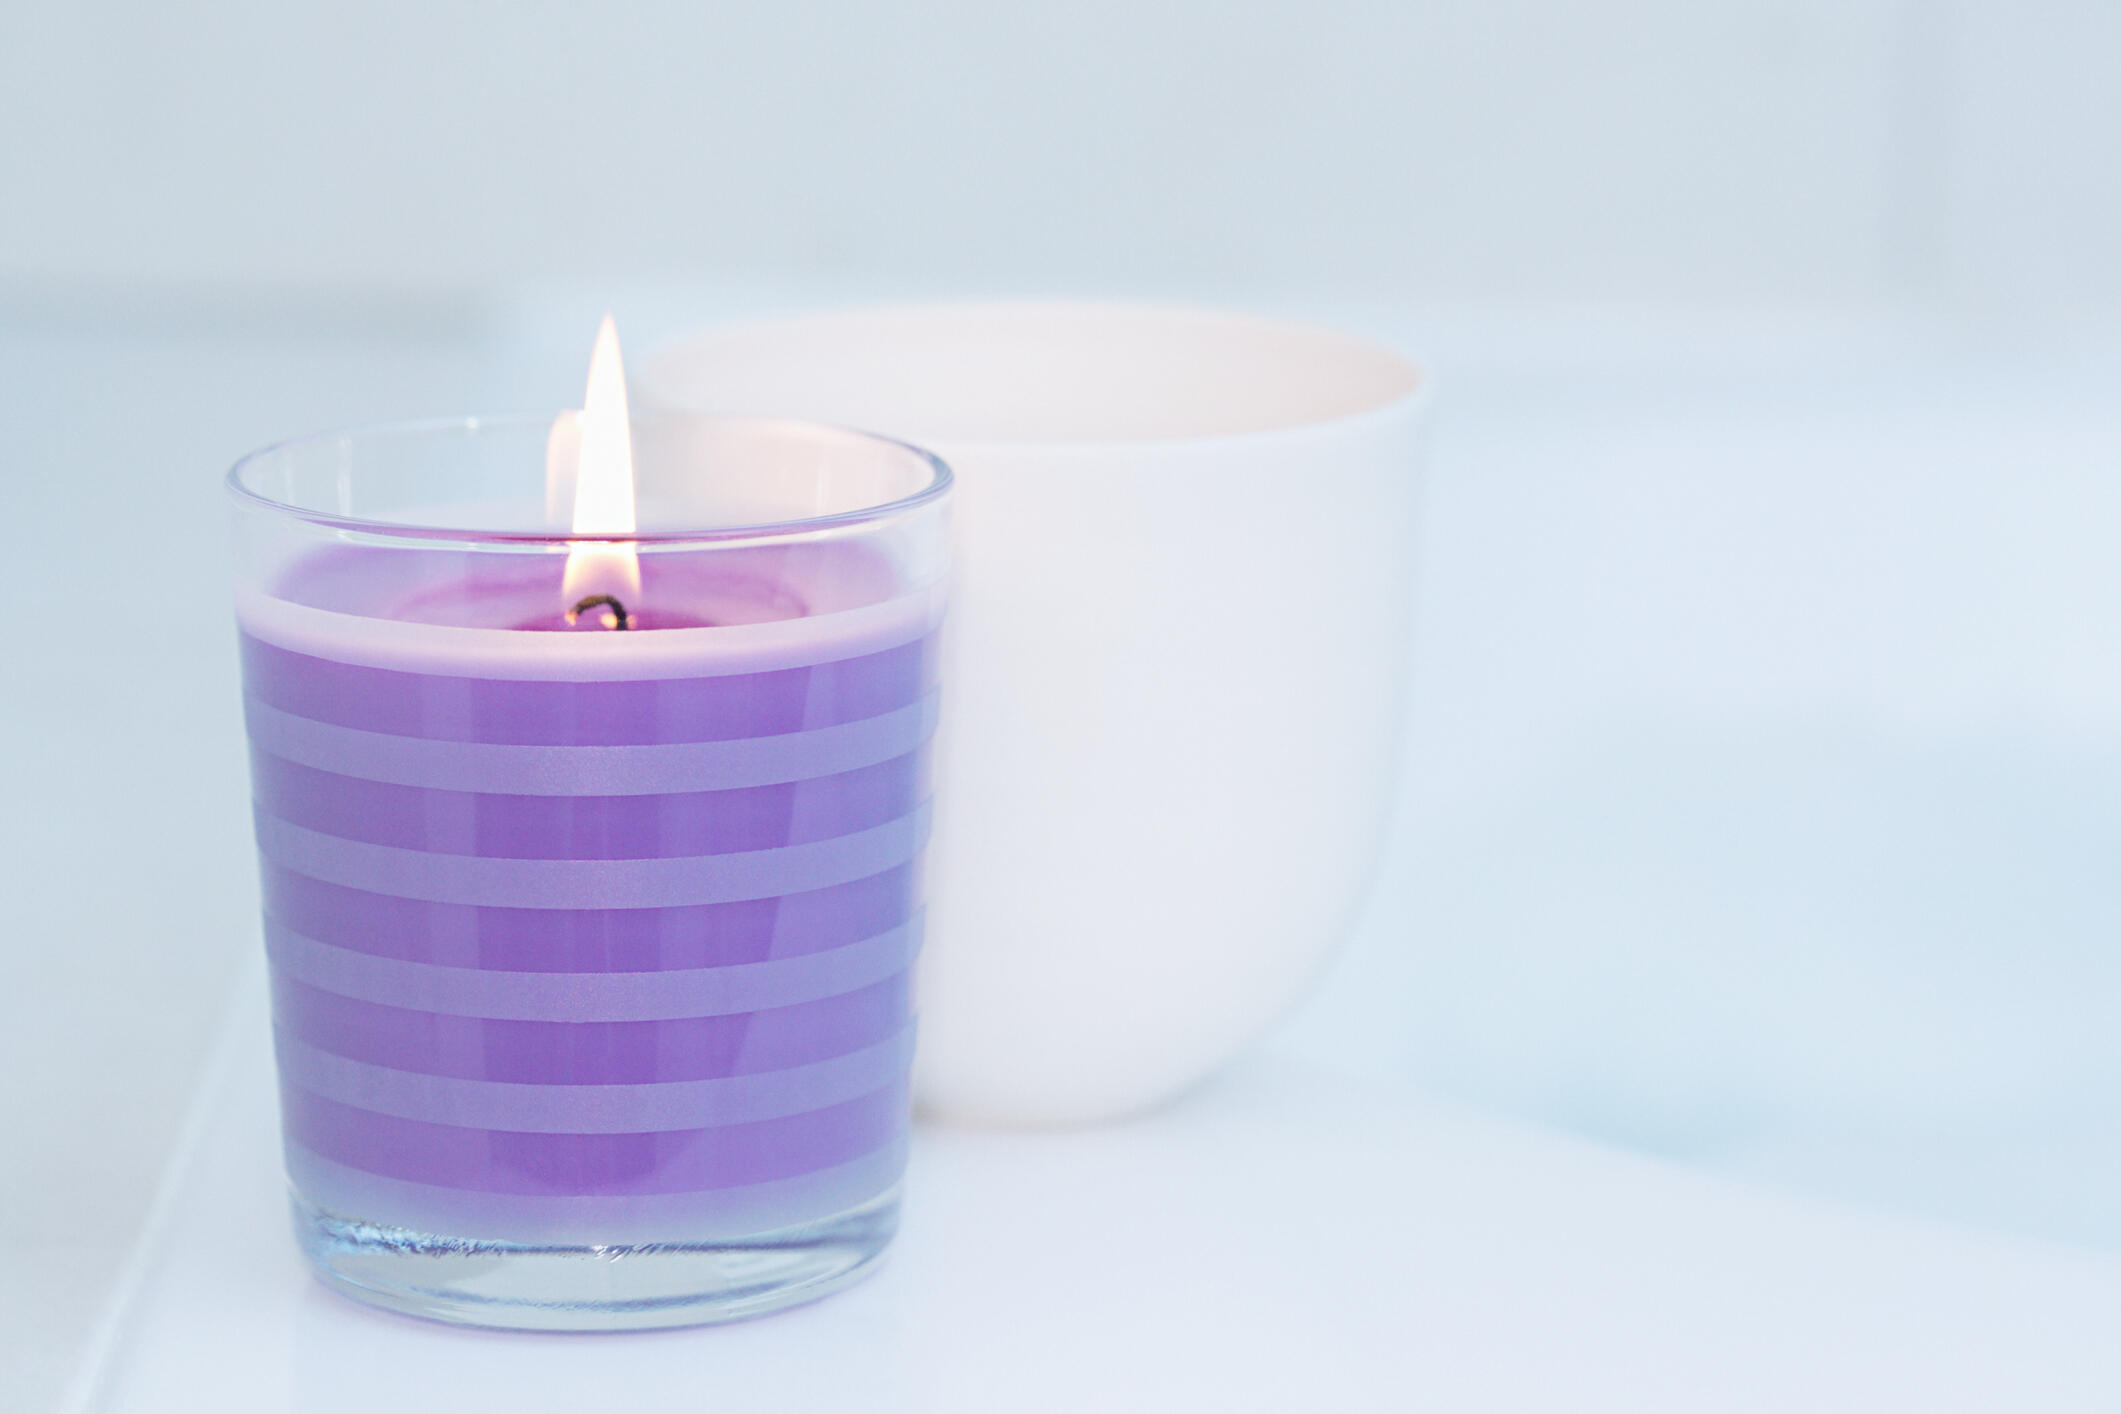 a purple candle burning on a silver background